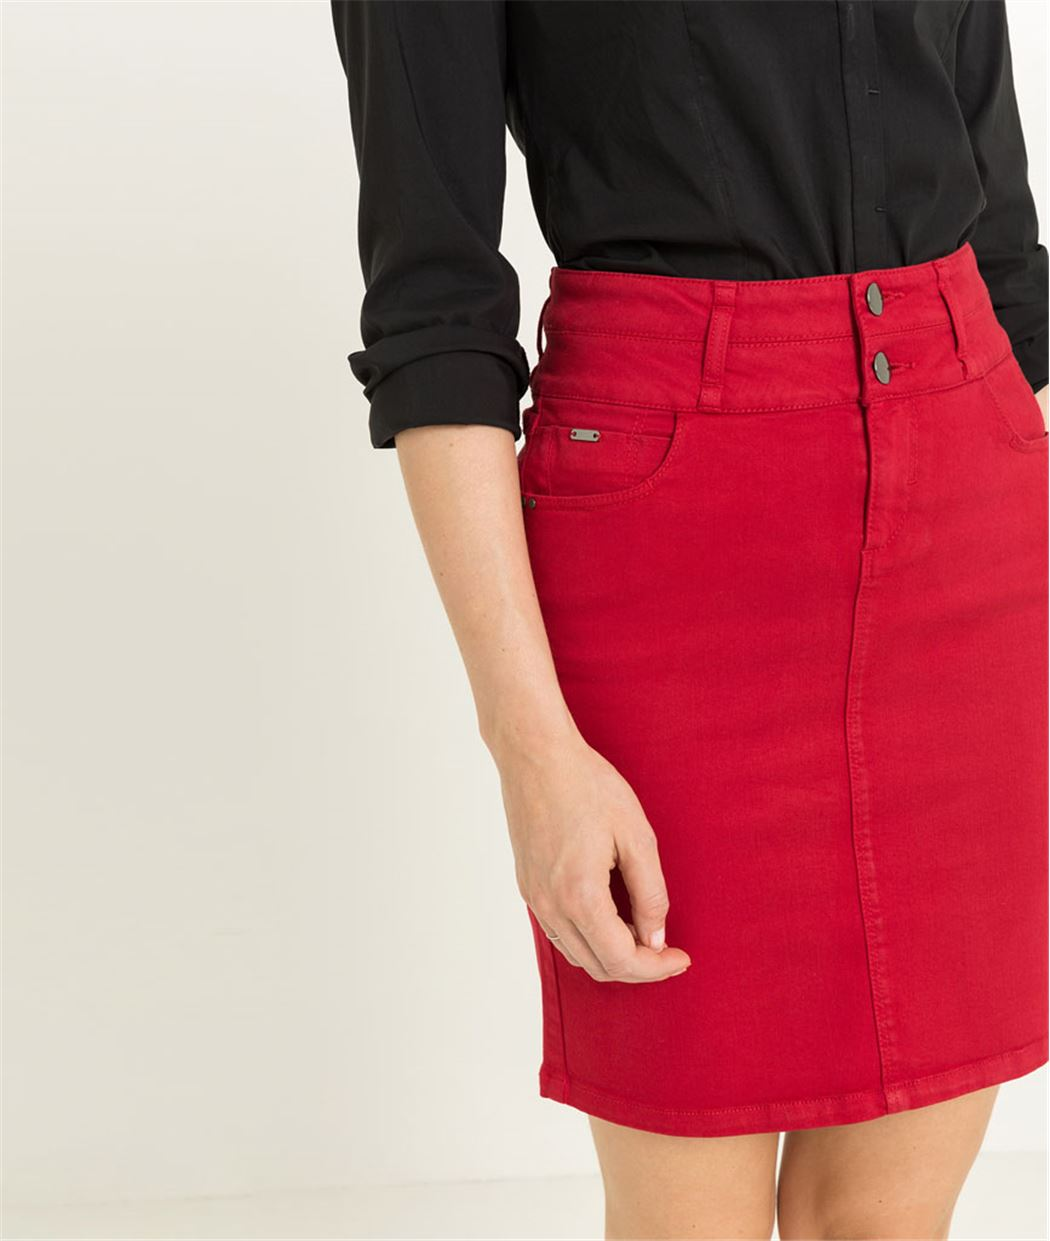 Jupe femme taille haute ROUGE